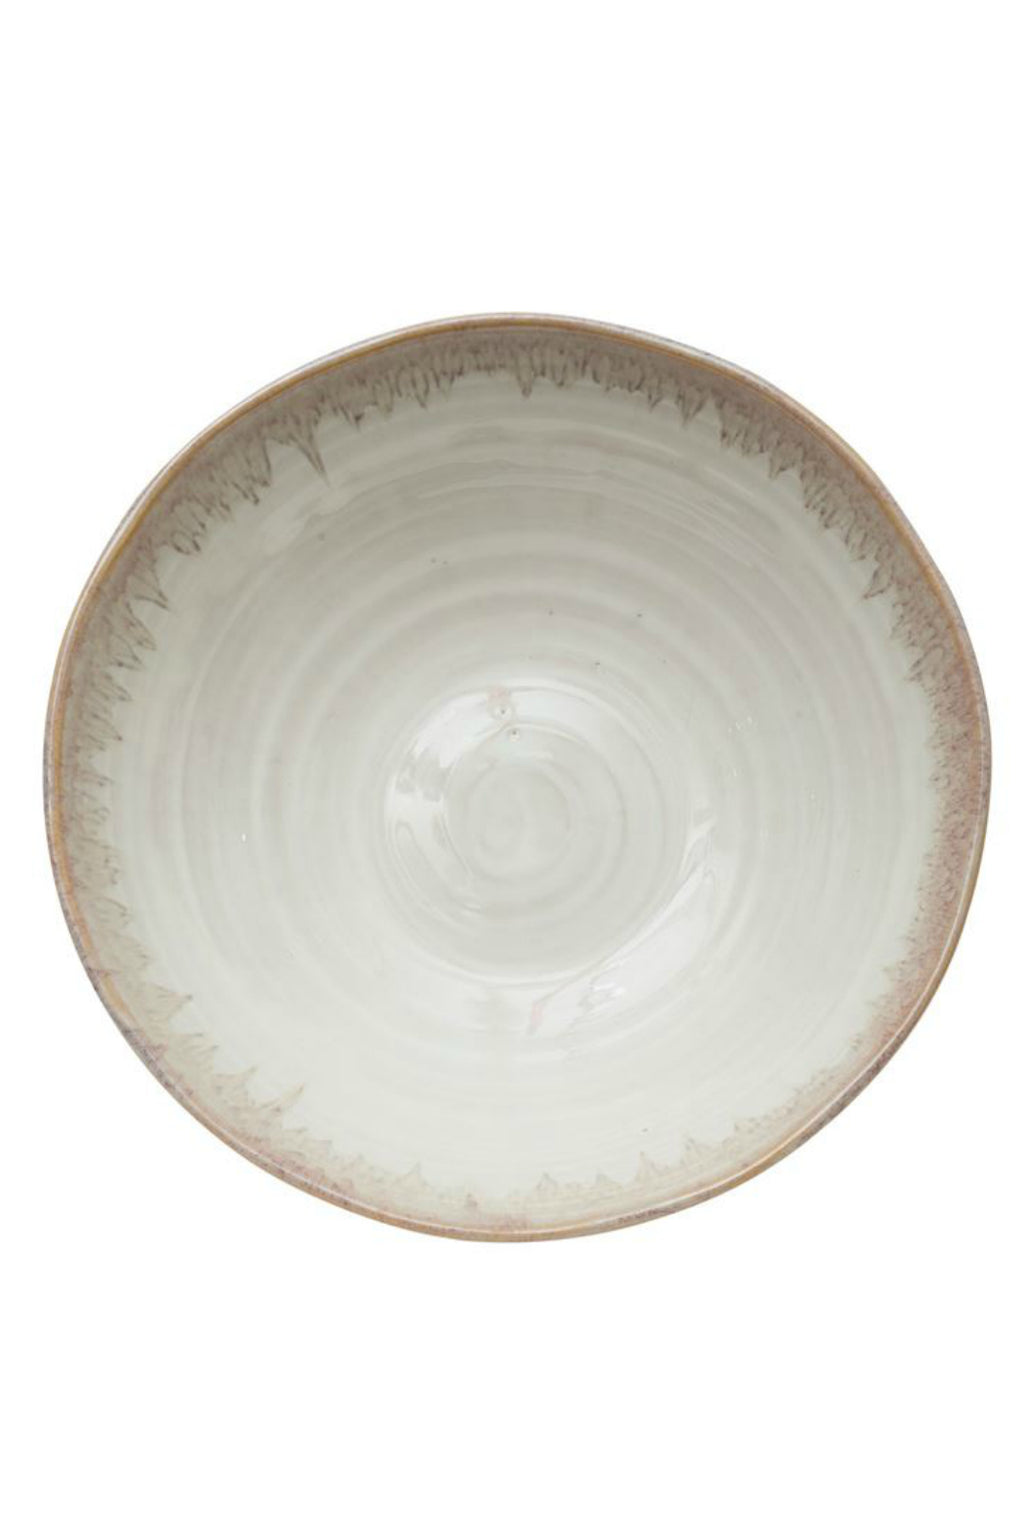 Bloomingville Stoneware Footed Bowl